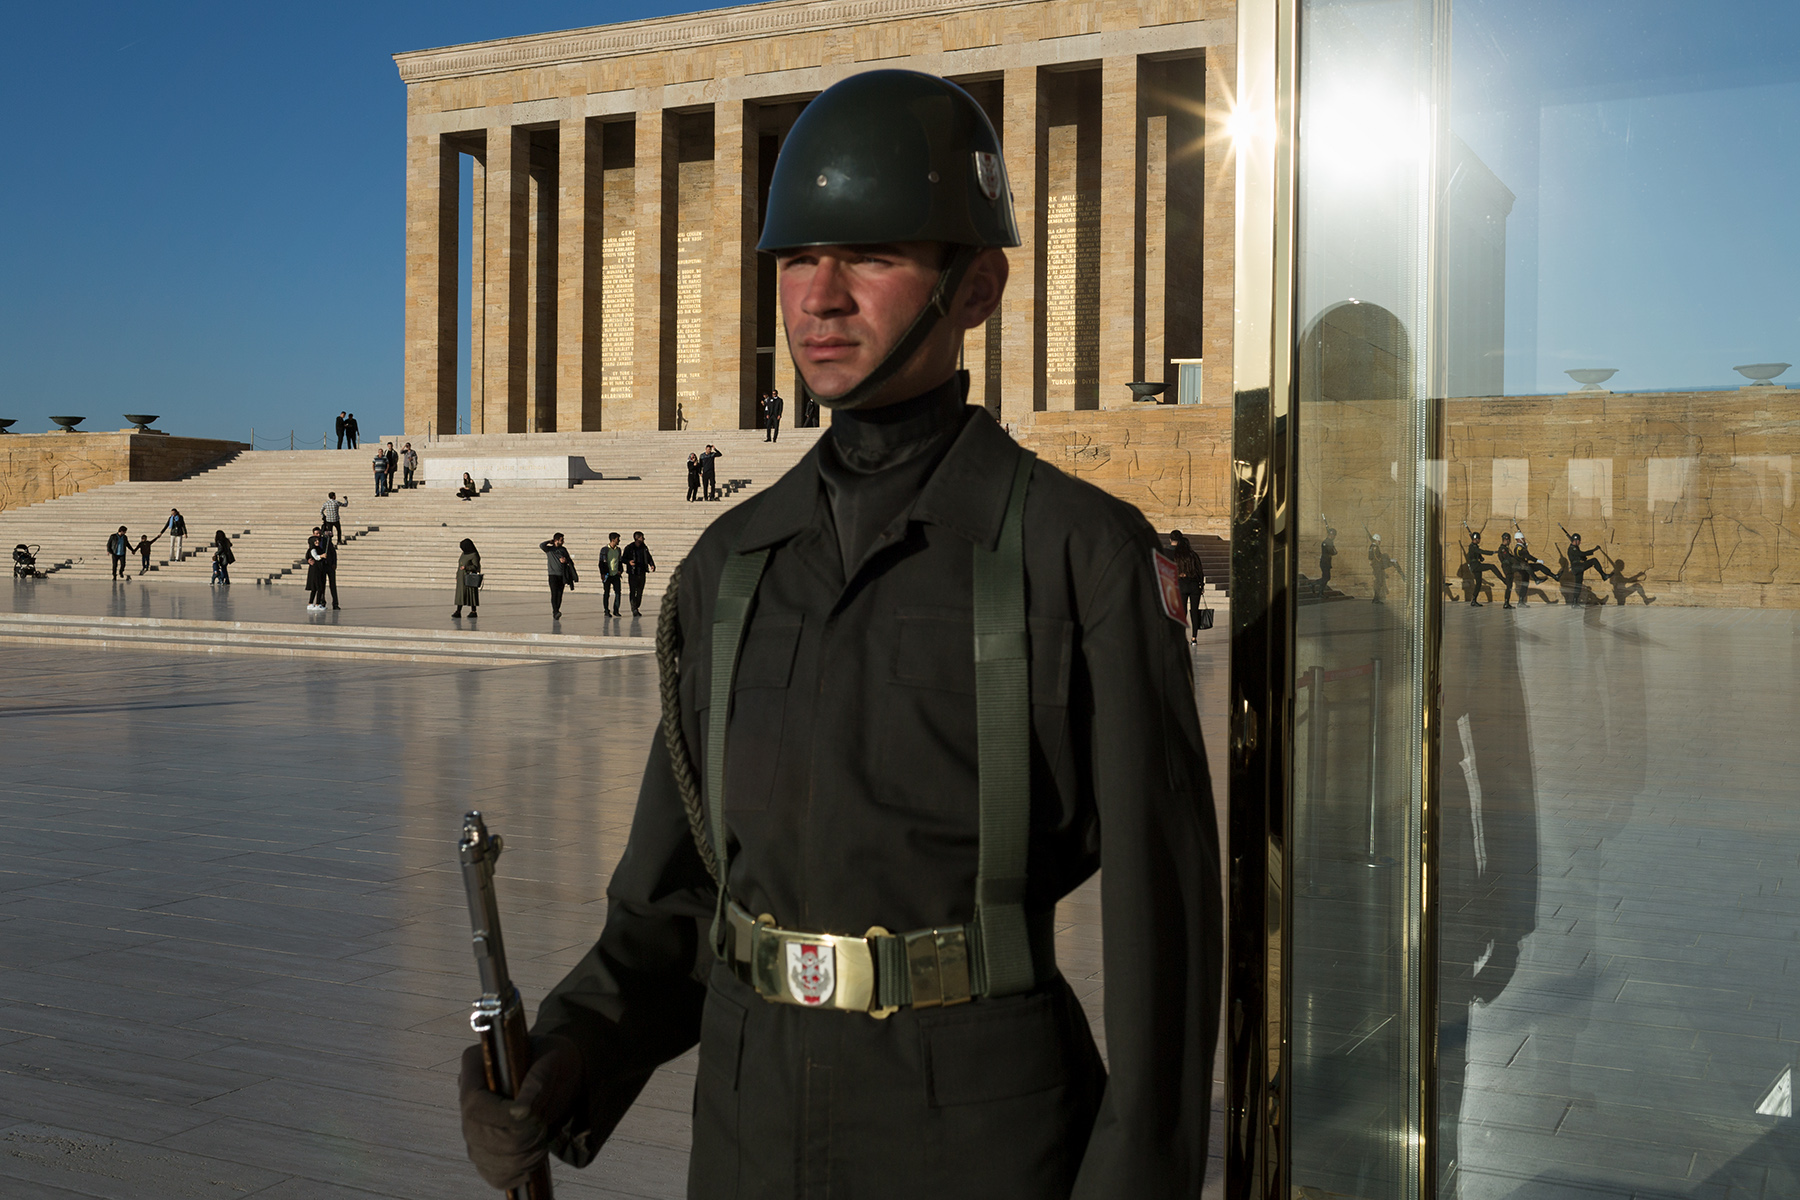 Turkey, 2017 - Changing of the Guard at Anitkabir, the mausoleum of Atatürk.